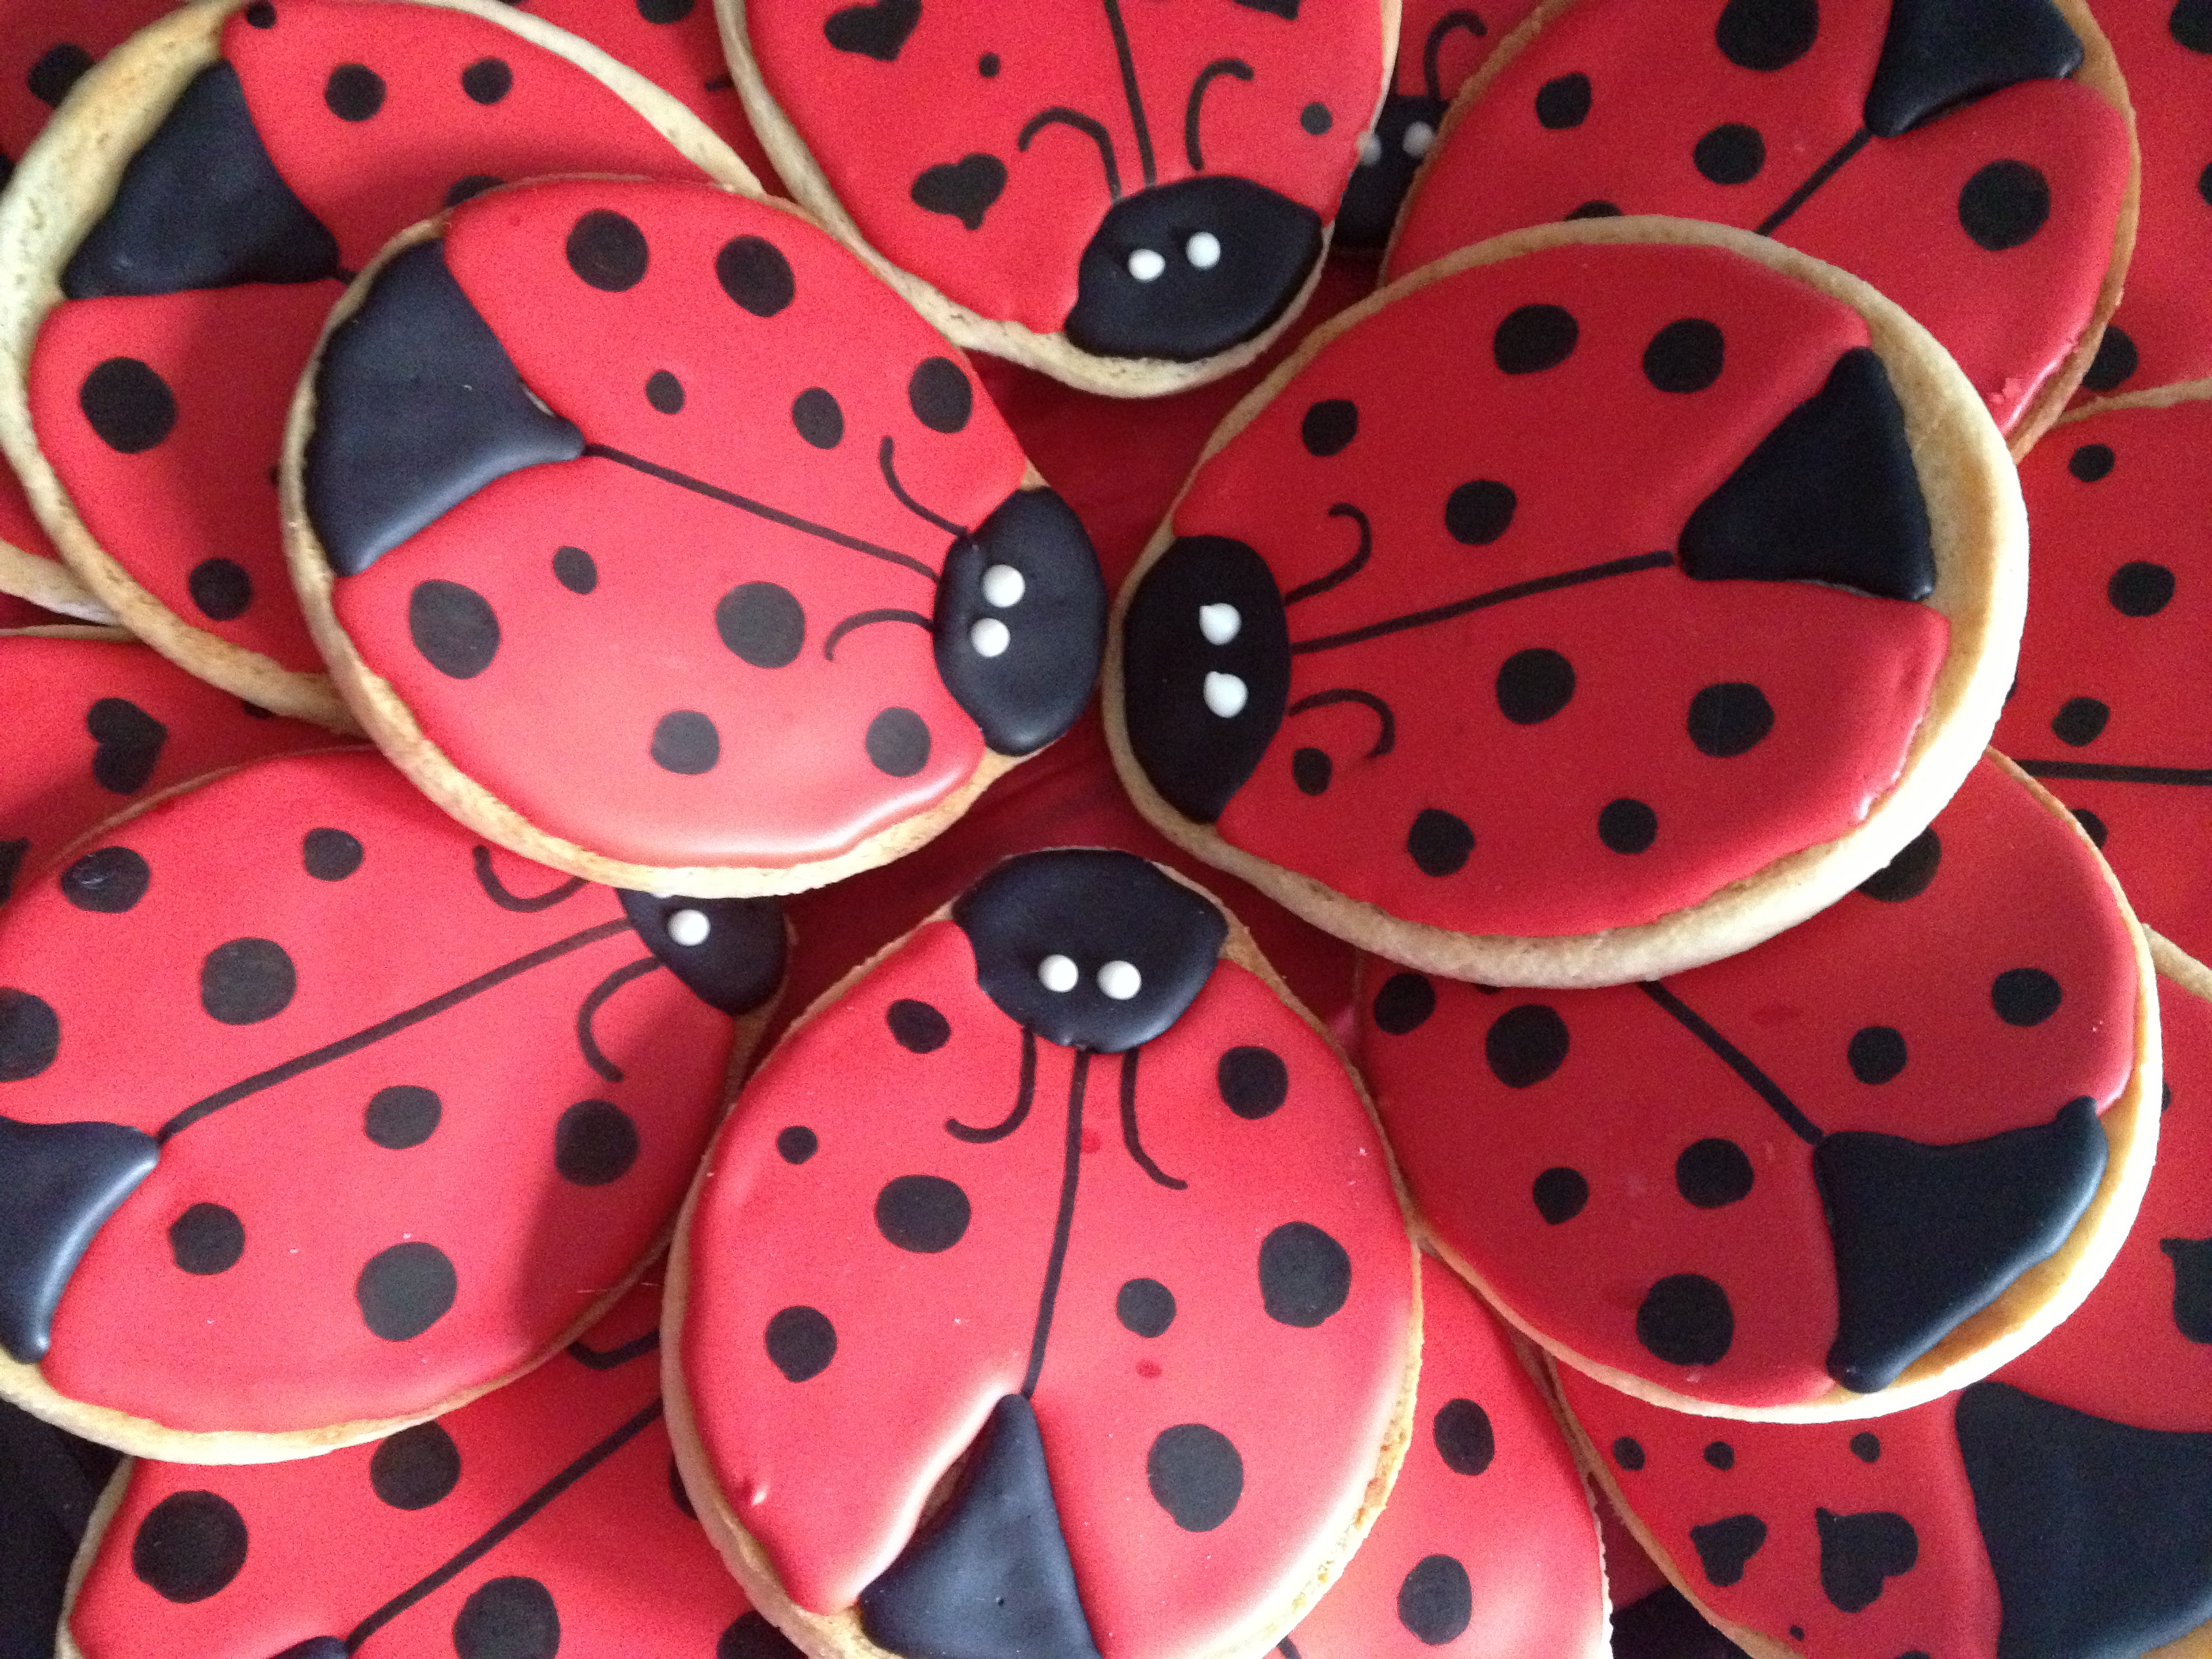 How To Make Ladybug Cookies By Victoria Two Girls